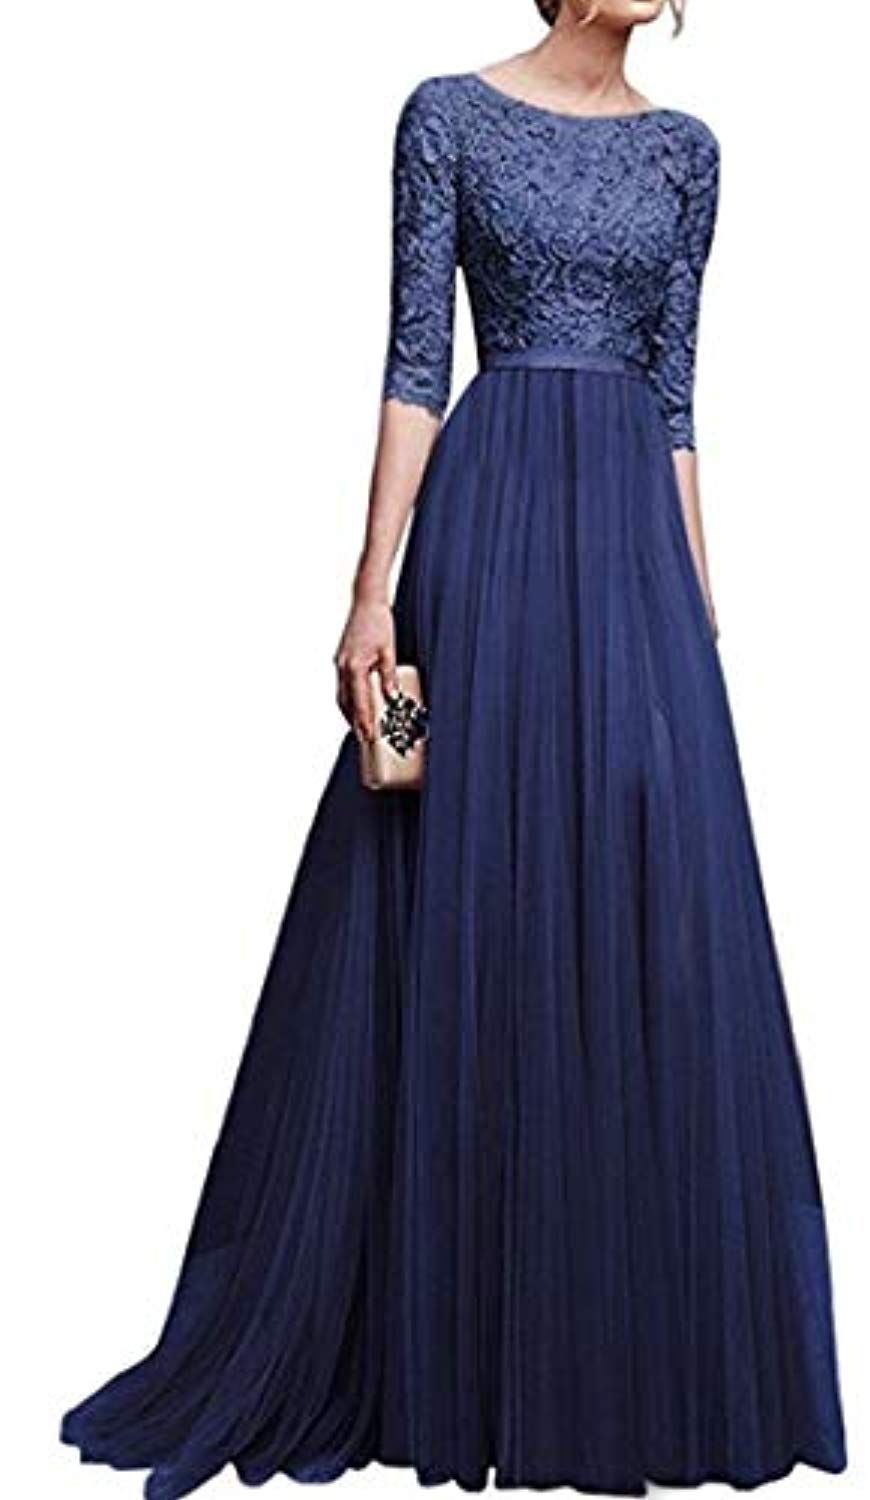 e68c9d43146f8 Womens Vintage Floral Lace 3/4 Sleeves Floor Length Retro Evening Cocktail  Formal Bridesmaid Gown